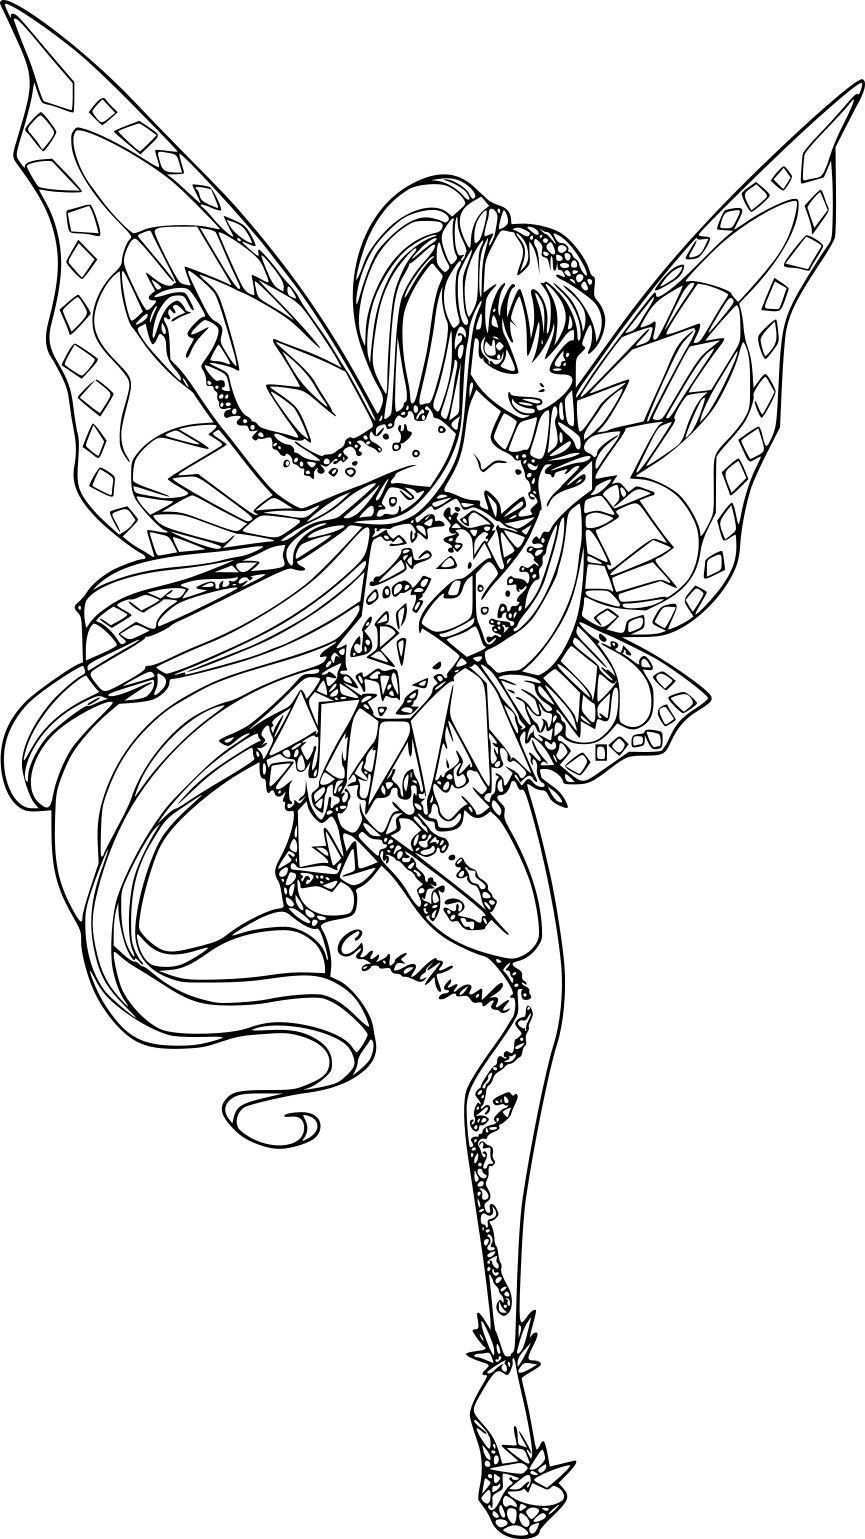 Winx Club Coloring Pages Unique Pin By Monica Johnson On Pencilmein Mermaid Coloring Pages Cute Coloring Pages Coloring Pages